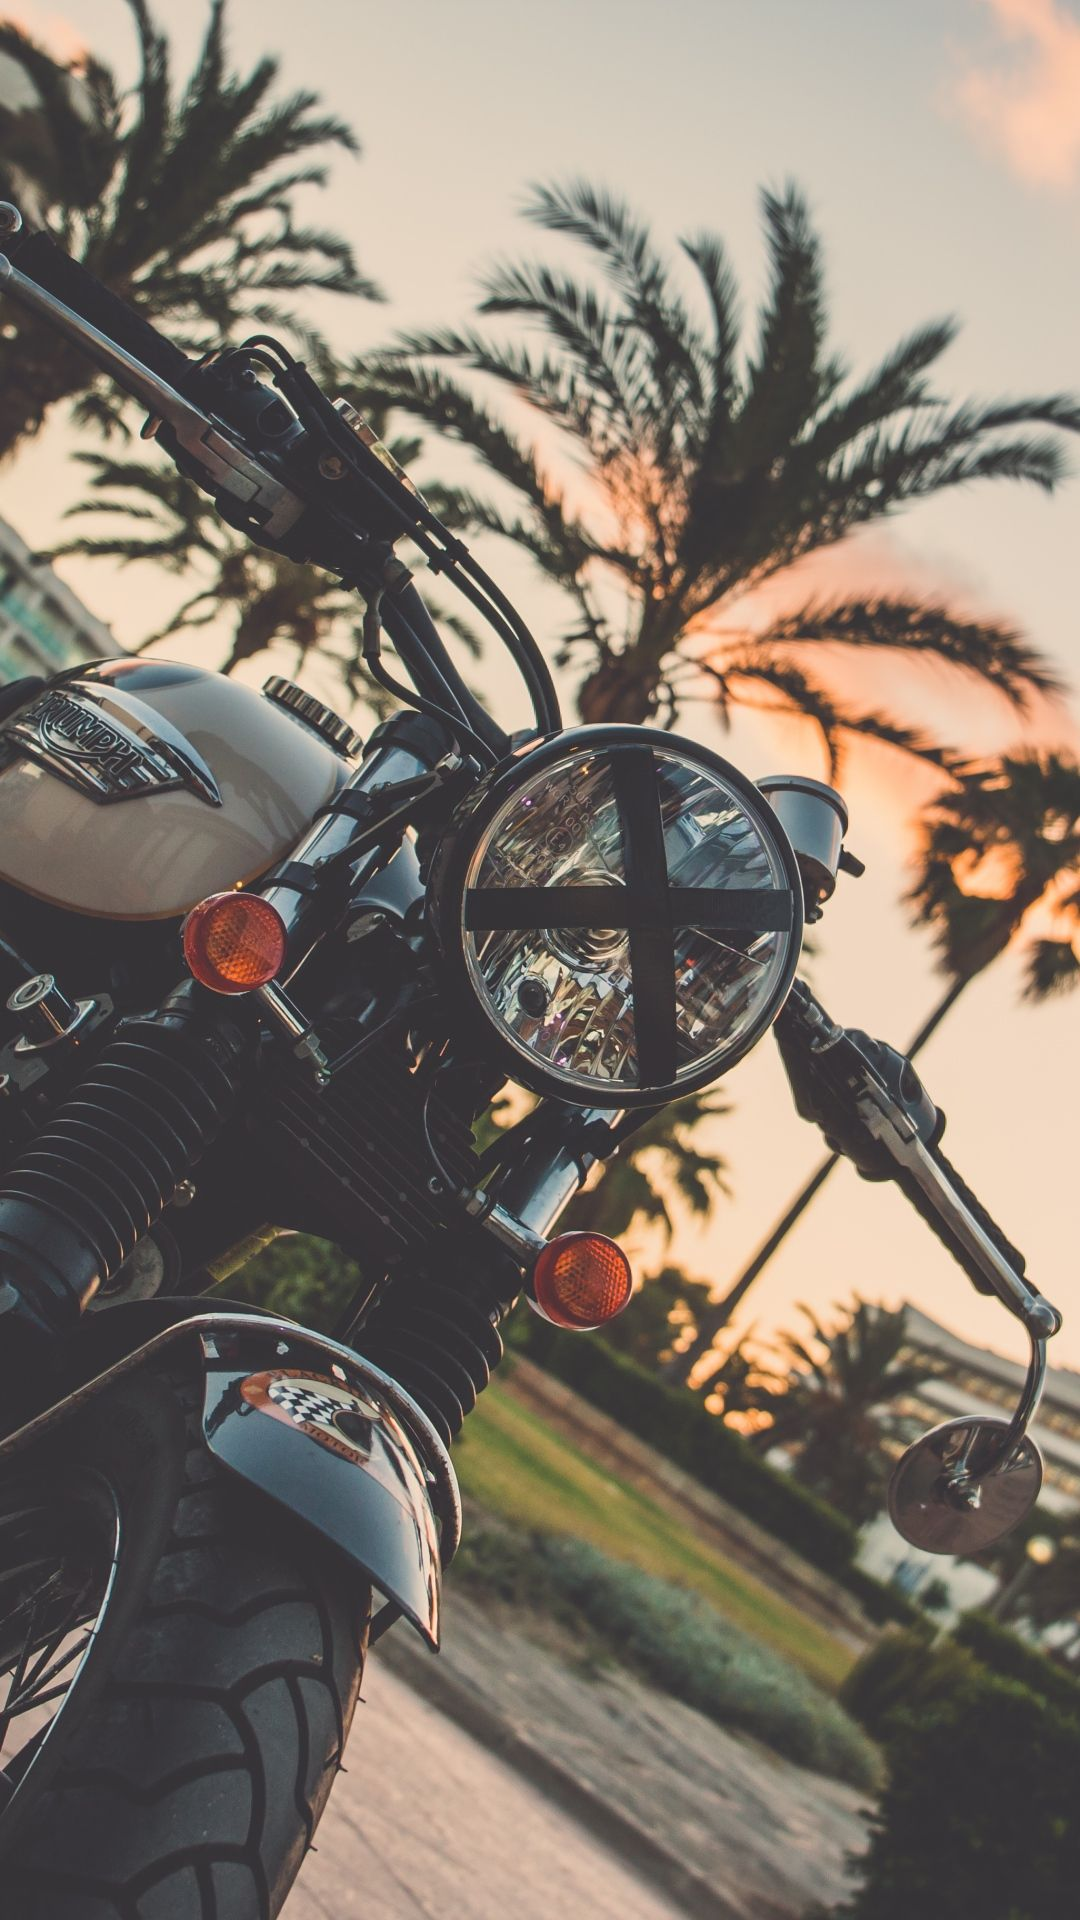 Download Wallpaper 1080x1920 Motorcycle Bike Palm Tree Sony